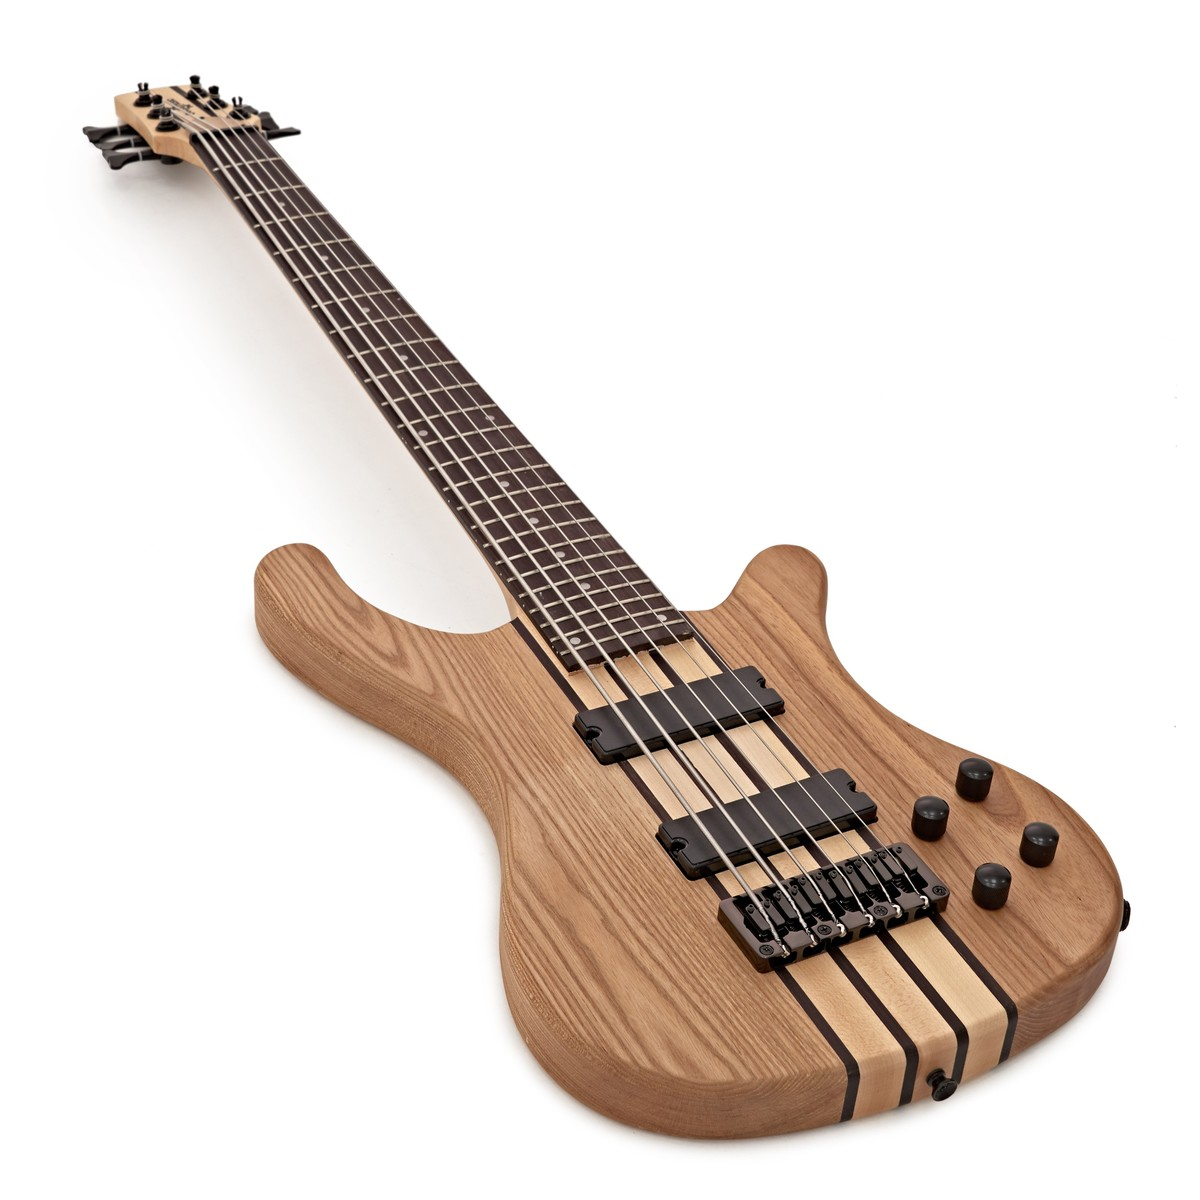 oregon 6 string bass guitar by gear4music natural b stock at gear4music. Black Bedroom Furniture Sets. Home Design Ideas